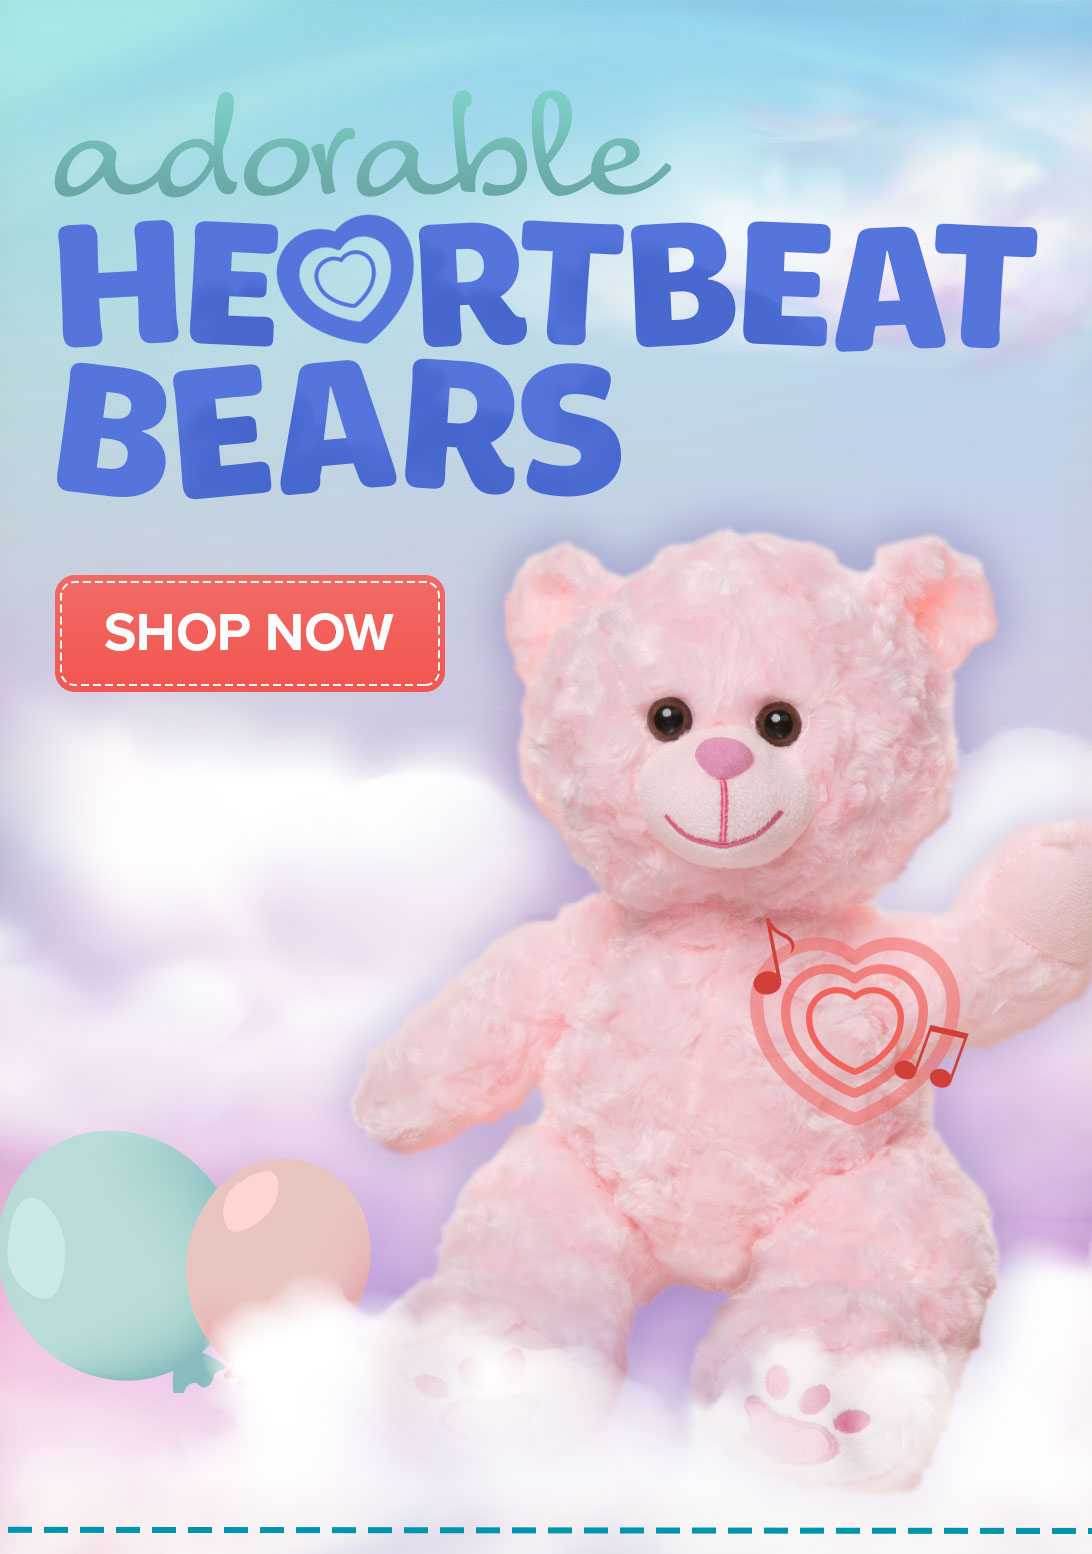 Heartbeat Bears - Shop Now